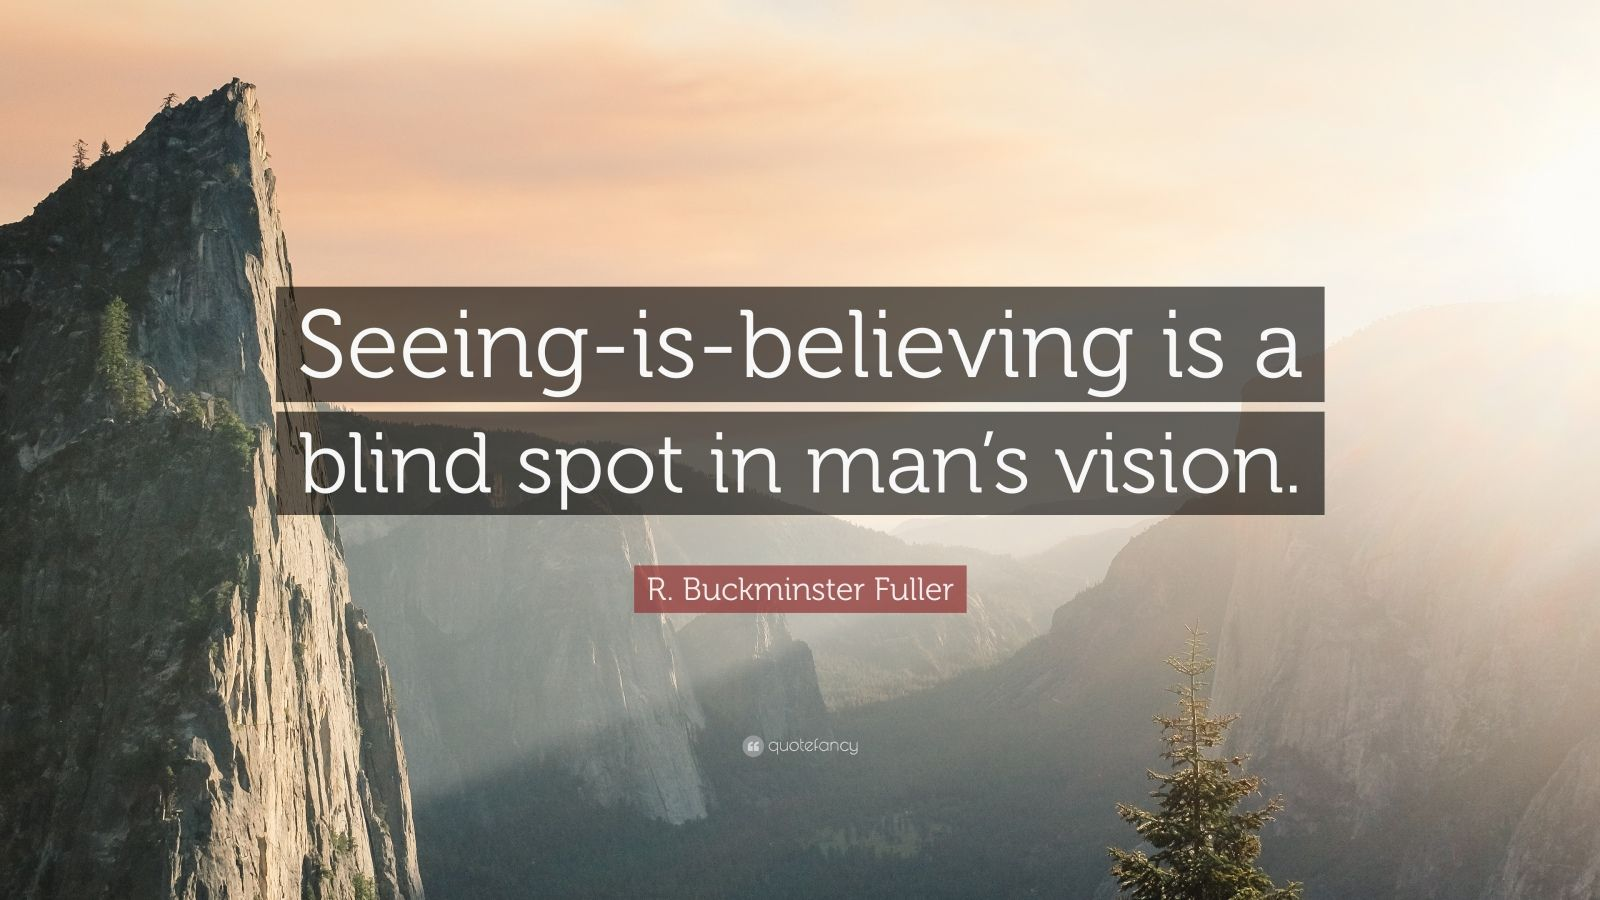 """R. Buckminster Fuller Quote: """"Seeing-is-believing is a blind spot in man's vision."""""""